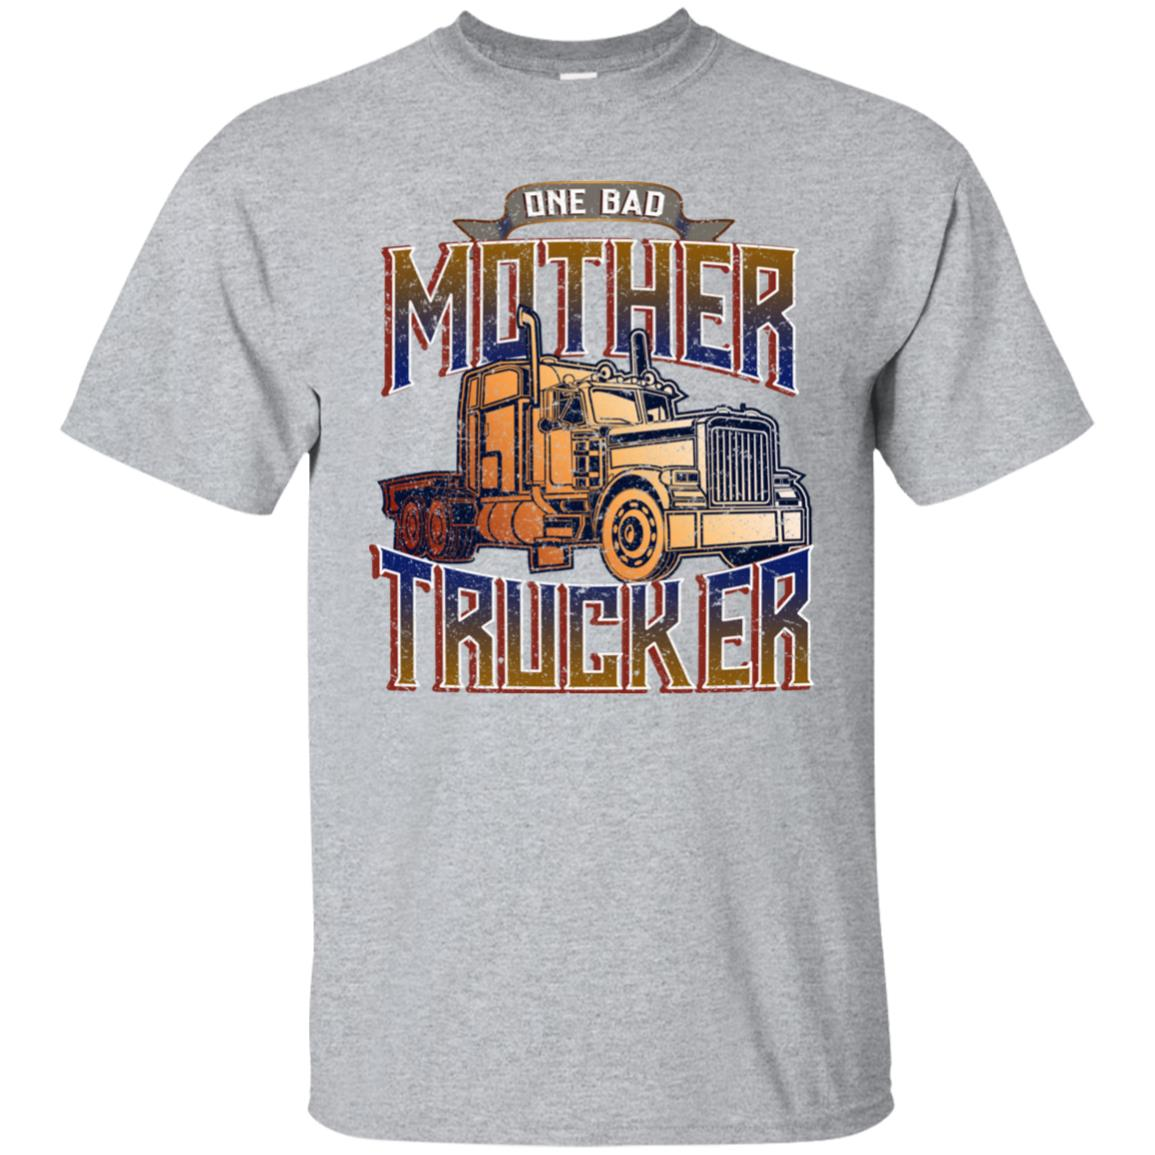 Funny Truck Driver s One Bad Mother Trucker Unisex Short Sleeve